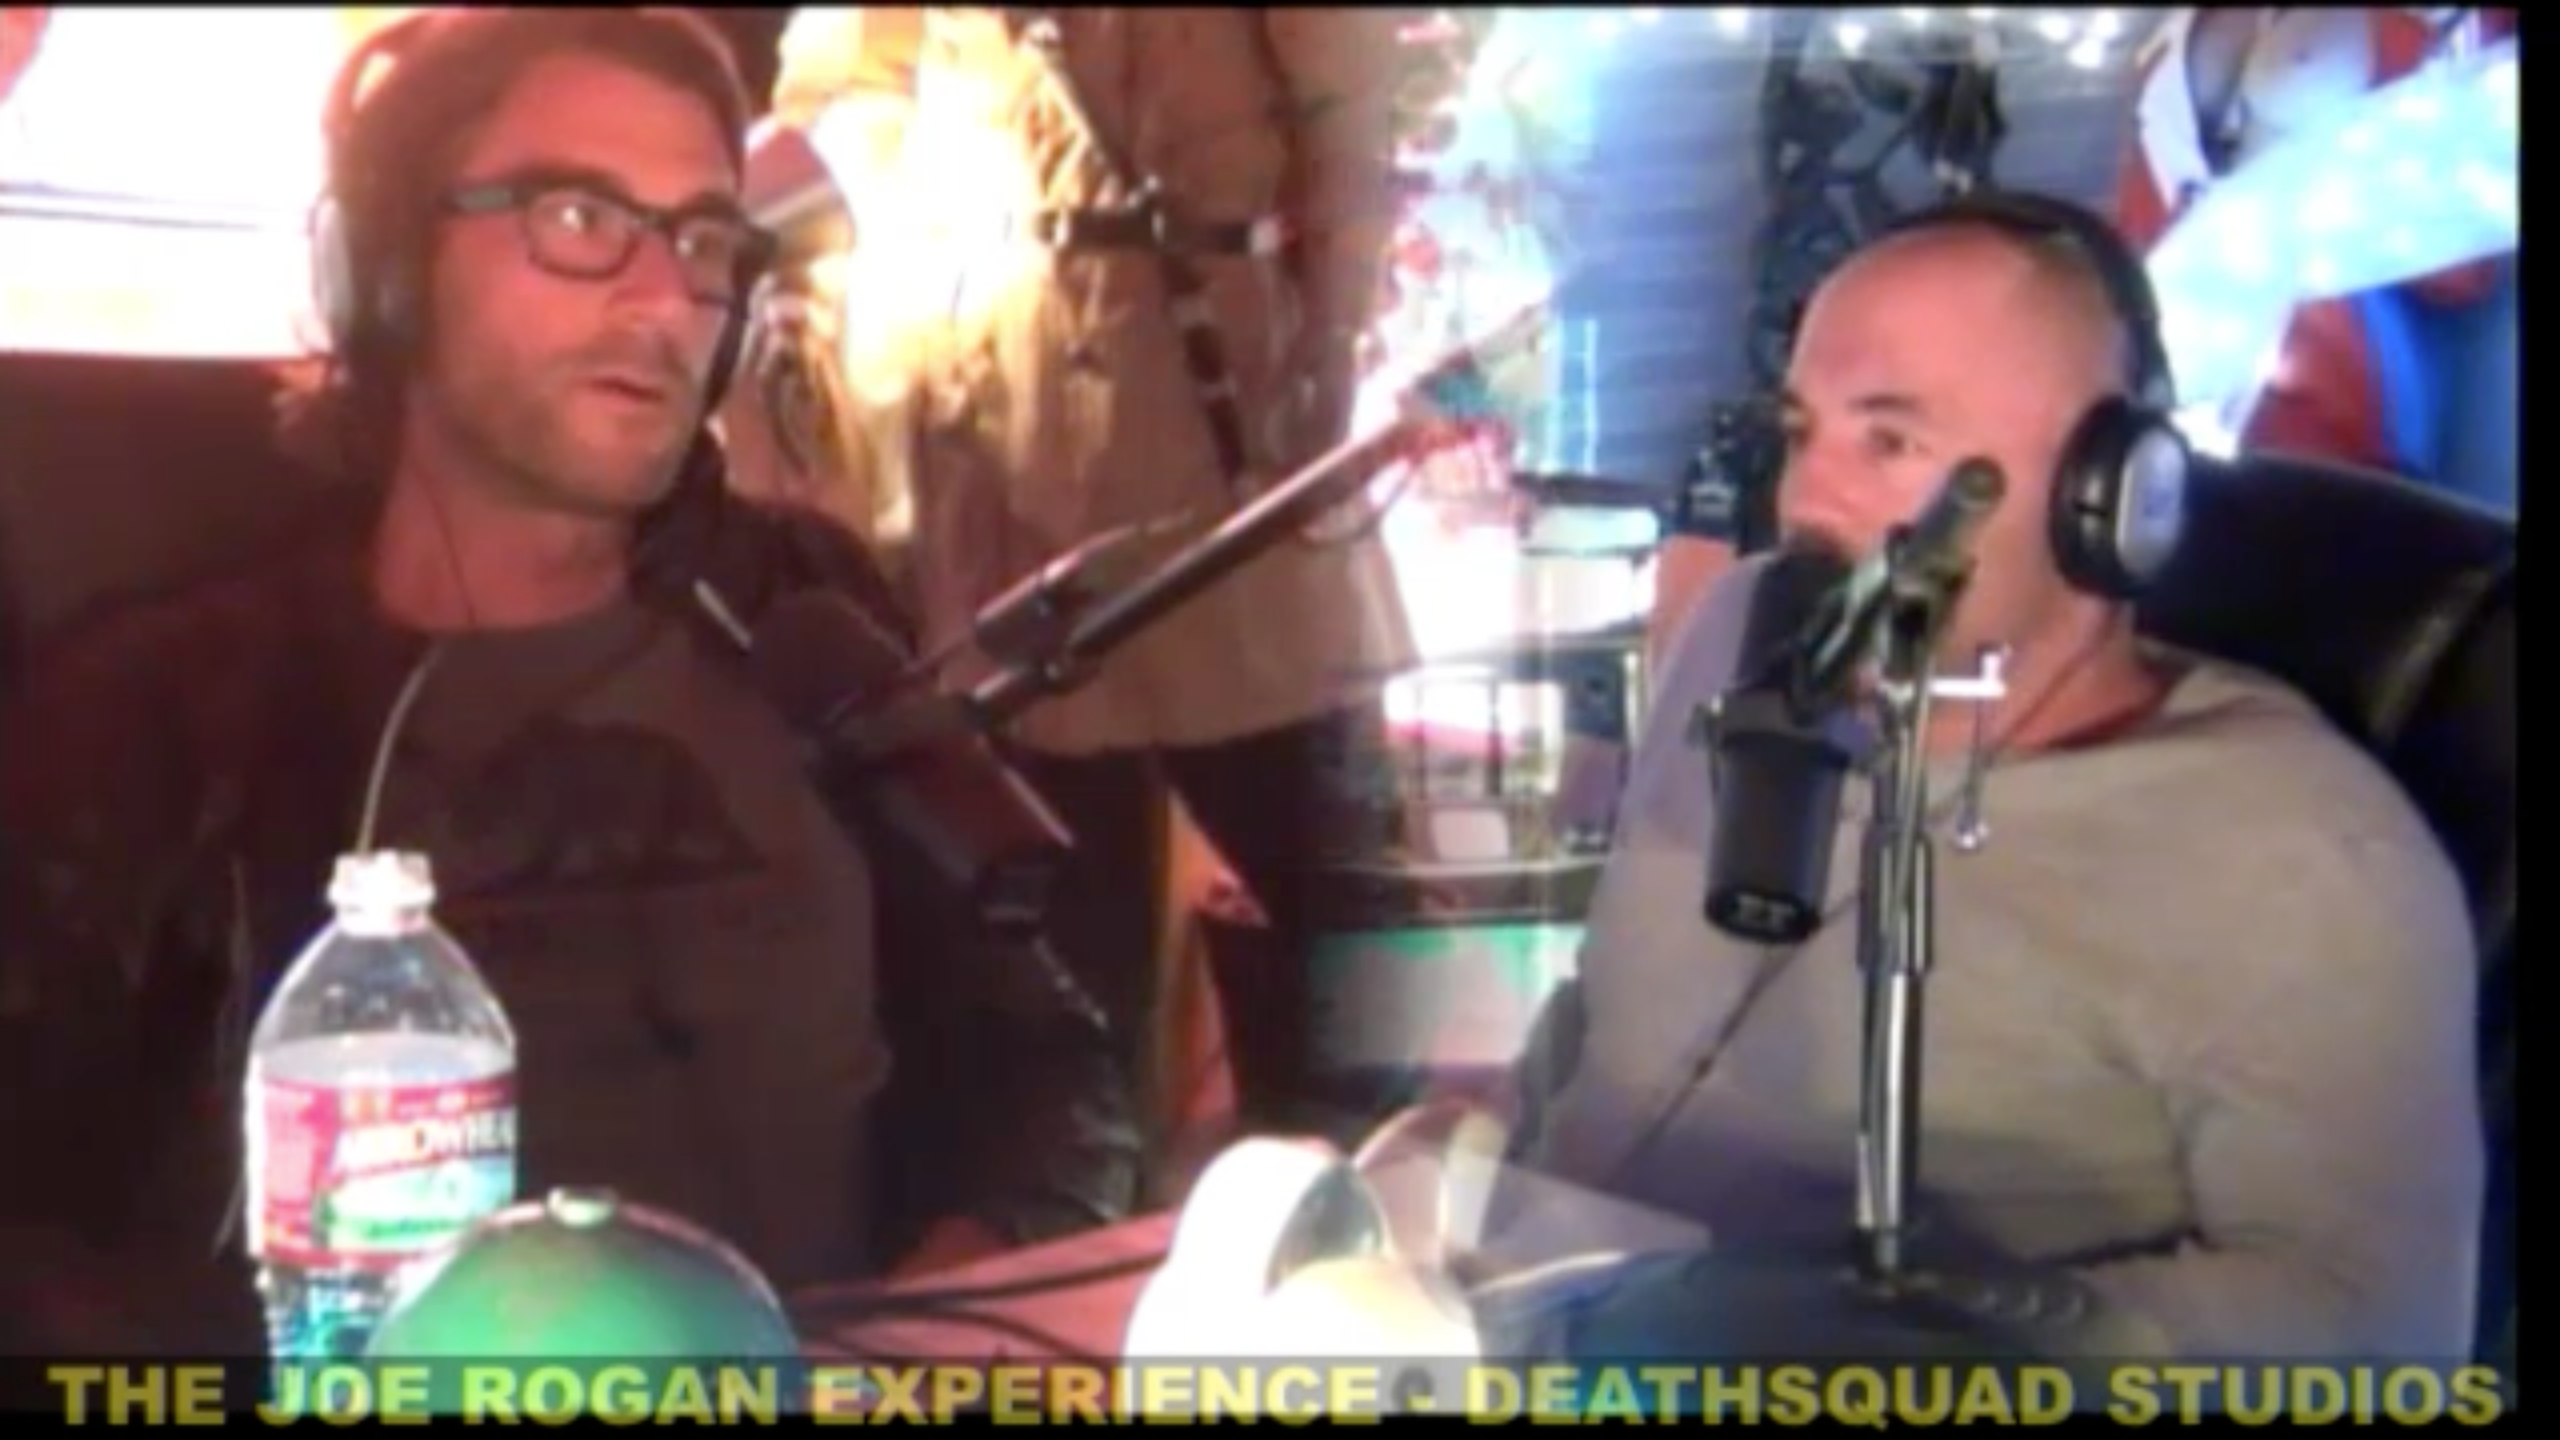 The Joe Rogan Experience #266 - Rich Roll, Brian Redban